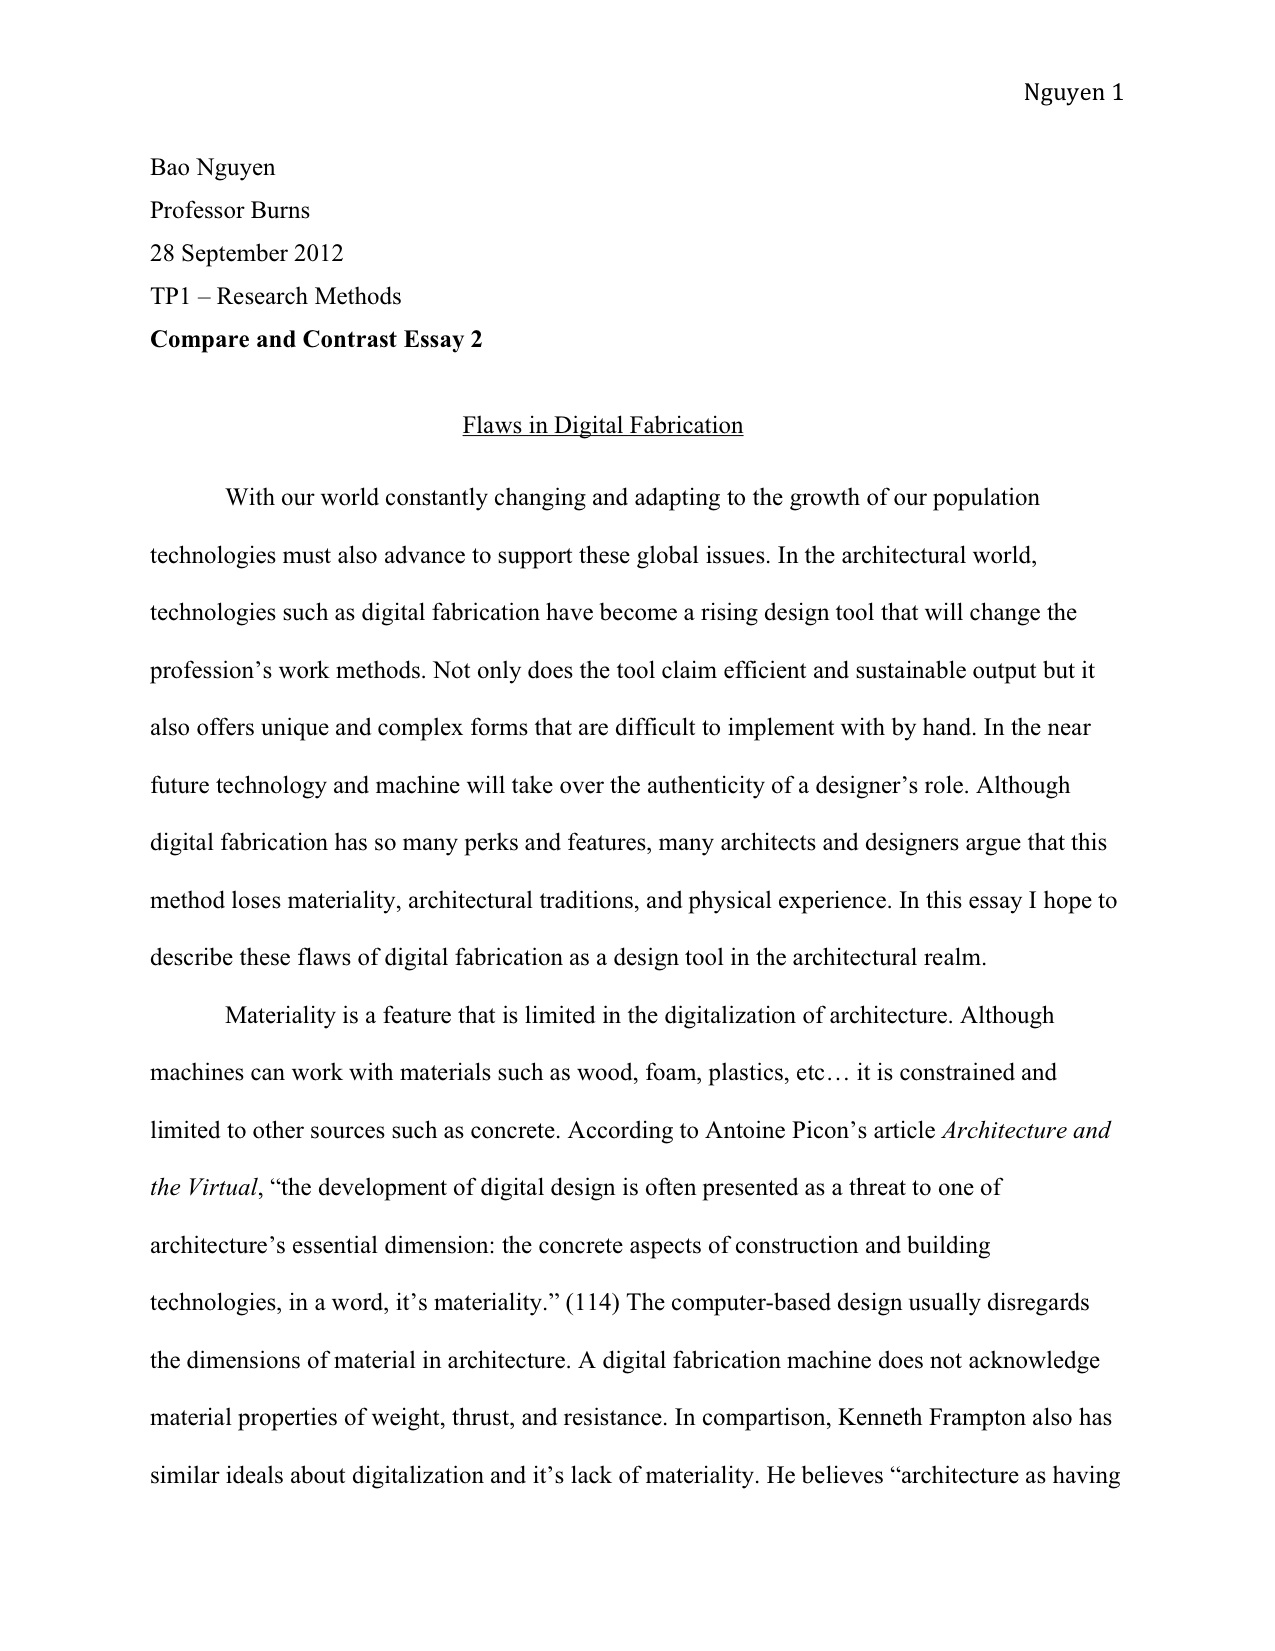 hot to write an essay This resource begins with a general description of essay writing and moves to a discussion of common essay genres students may encounter across the curriculum.